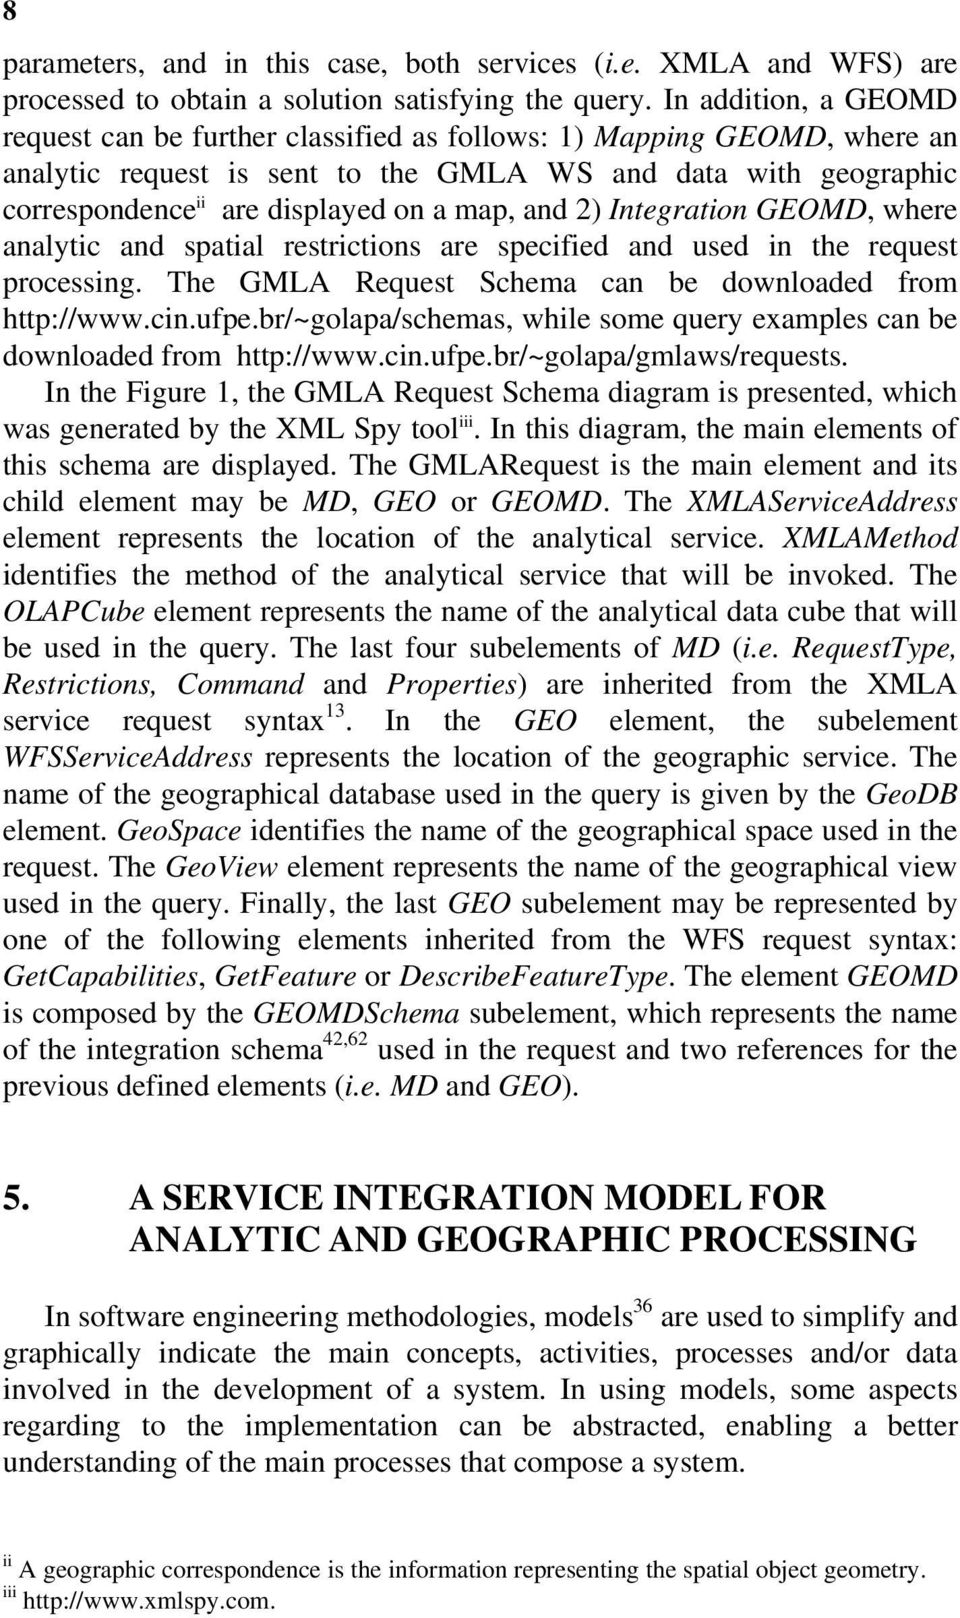 map, and 2) Integration GEOMD, where analytic and spatial restrictions are specified and used in the request processing. The GMLA Request Schema can be downloaded from http://www.cin.ufpe.